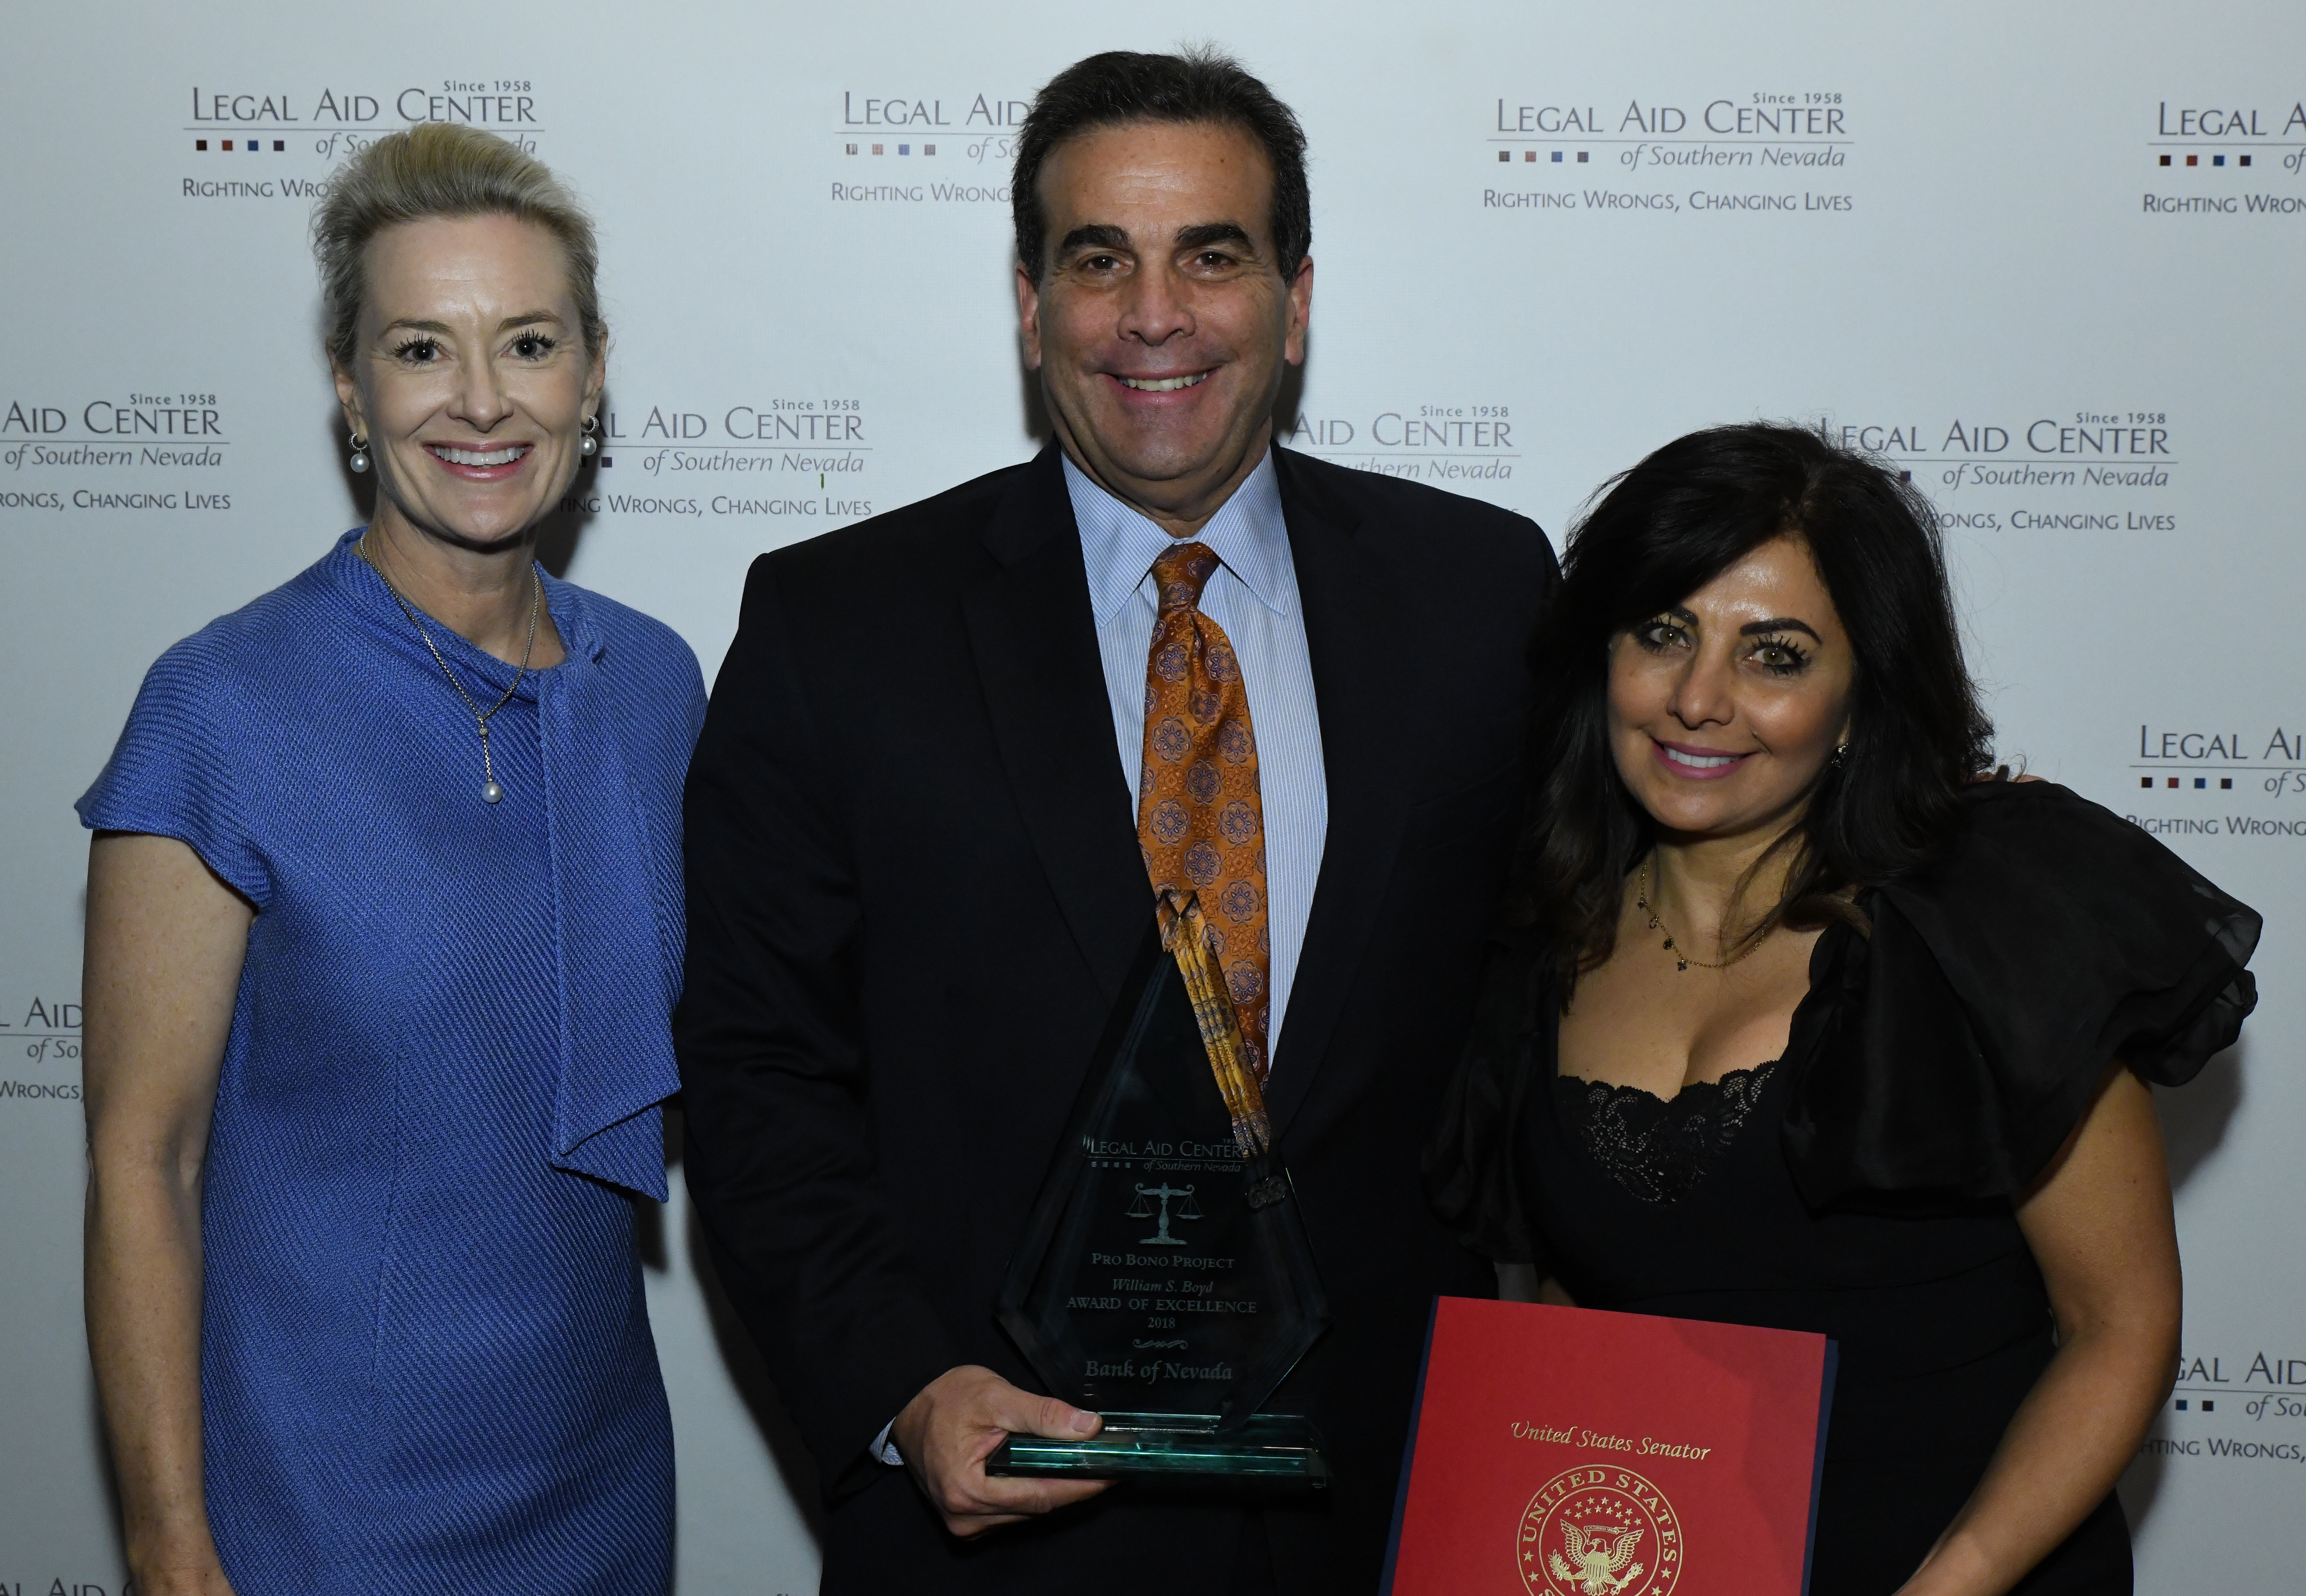 Past Winners - Legal Aid Center of Southern Nevada